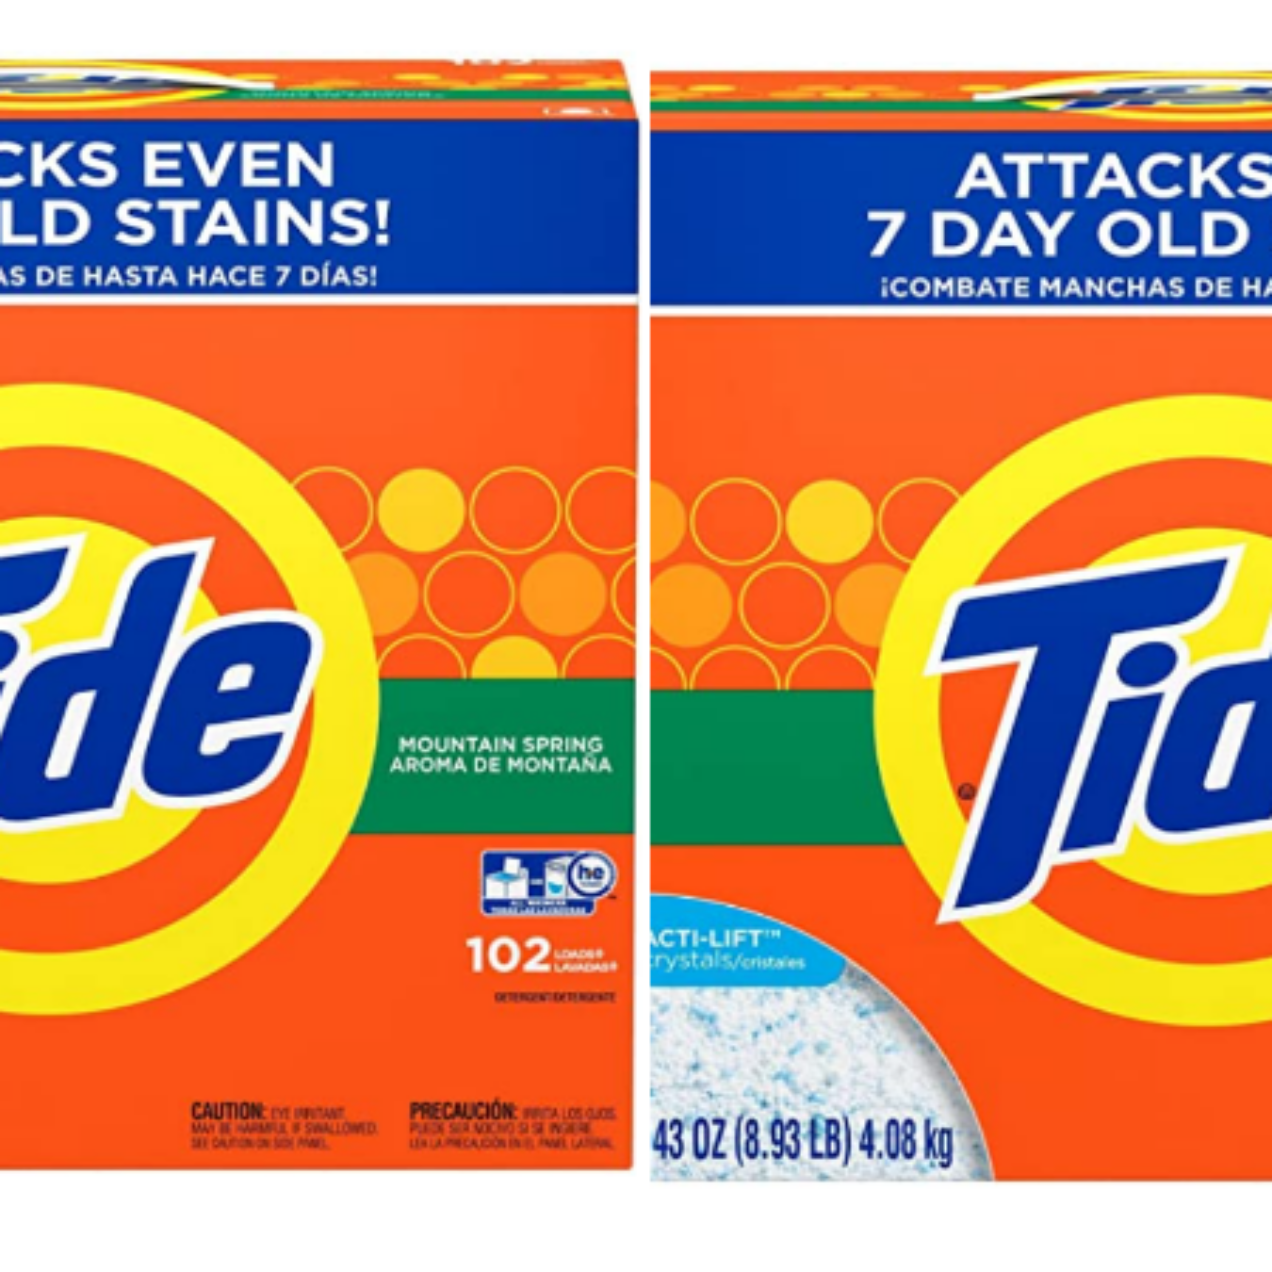 Tide Powder Laundry Detergent, Mountain Spring, 102 Loads 143 oz – Buy 2 Save $10!